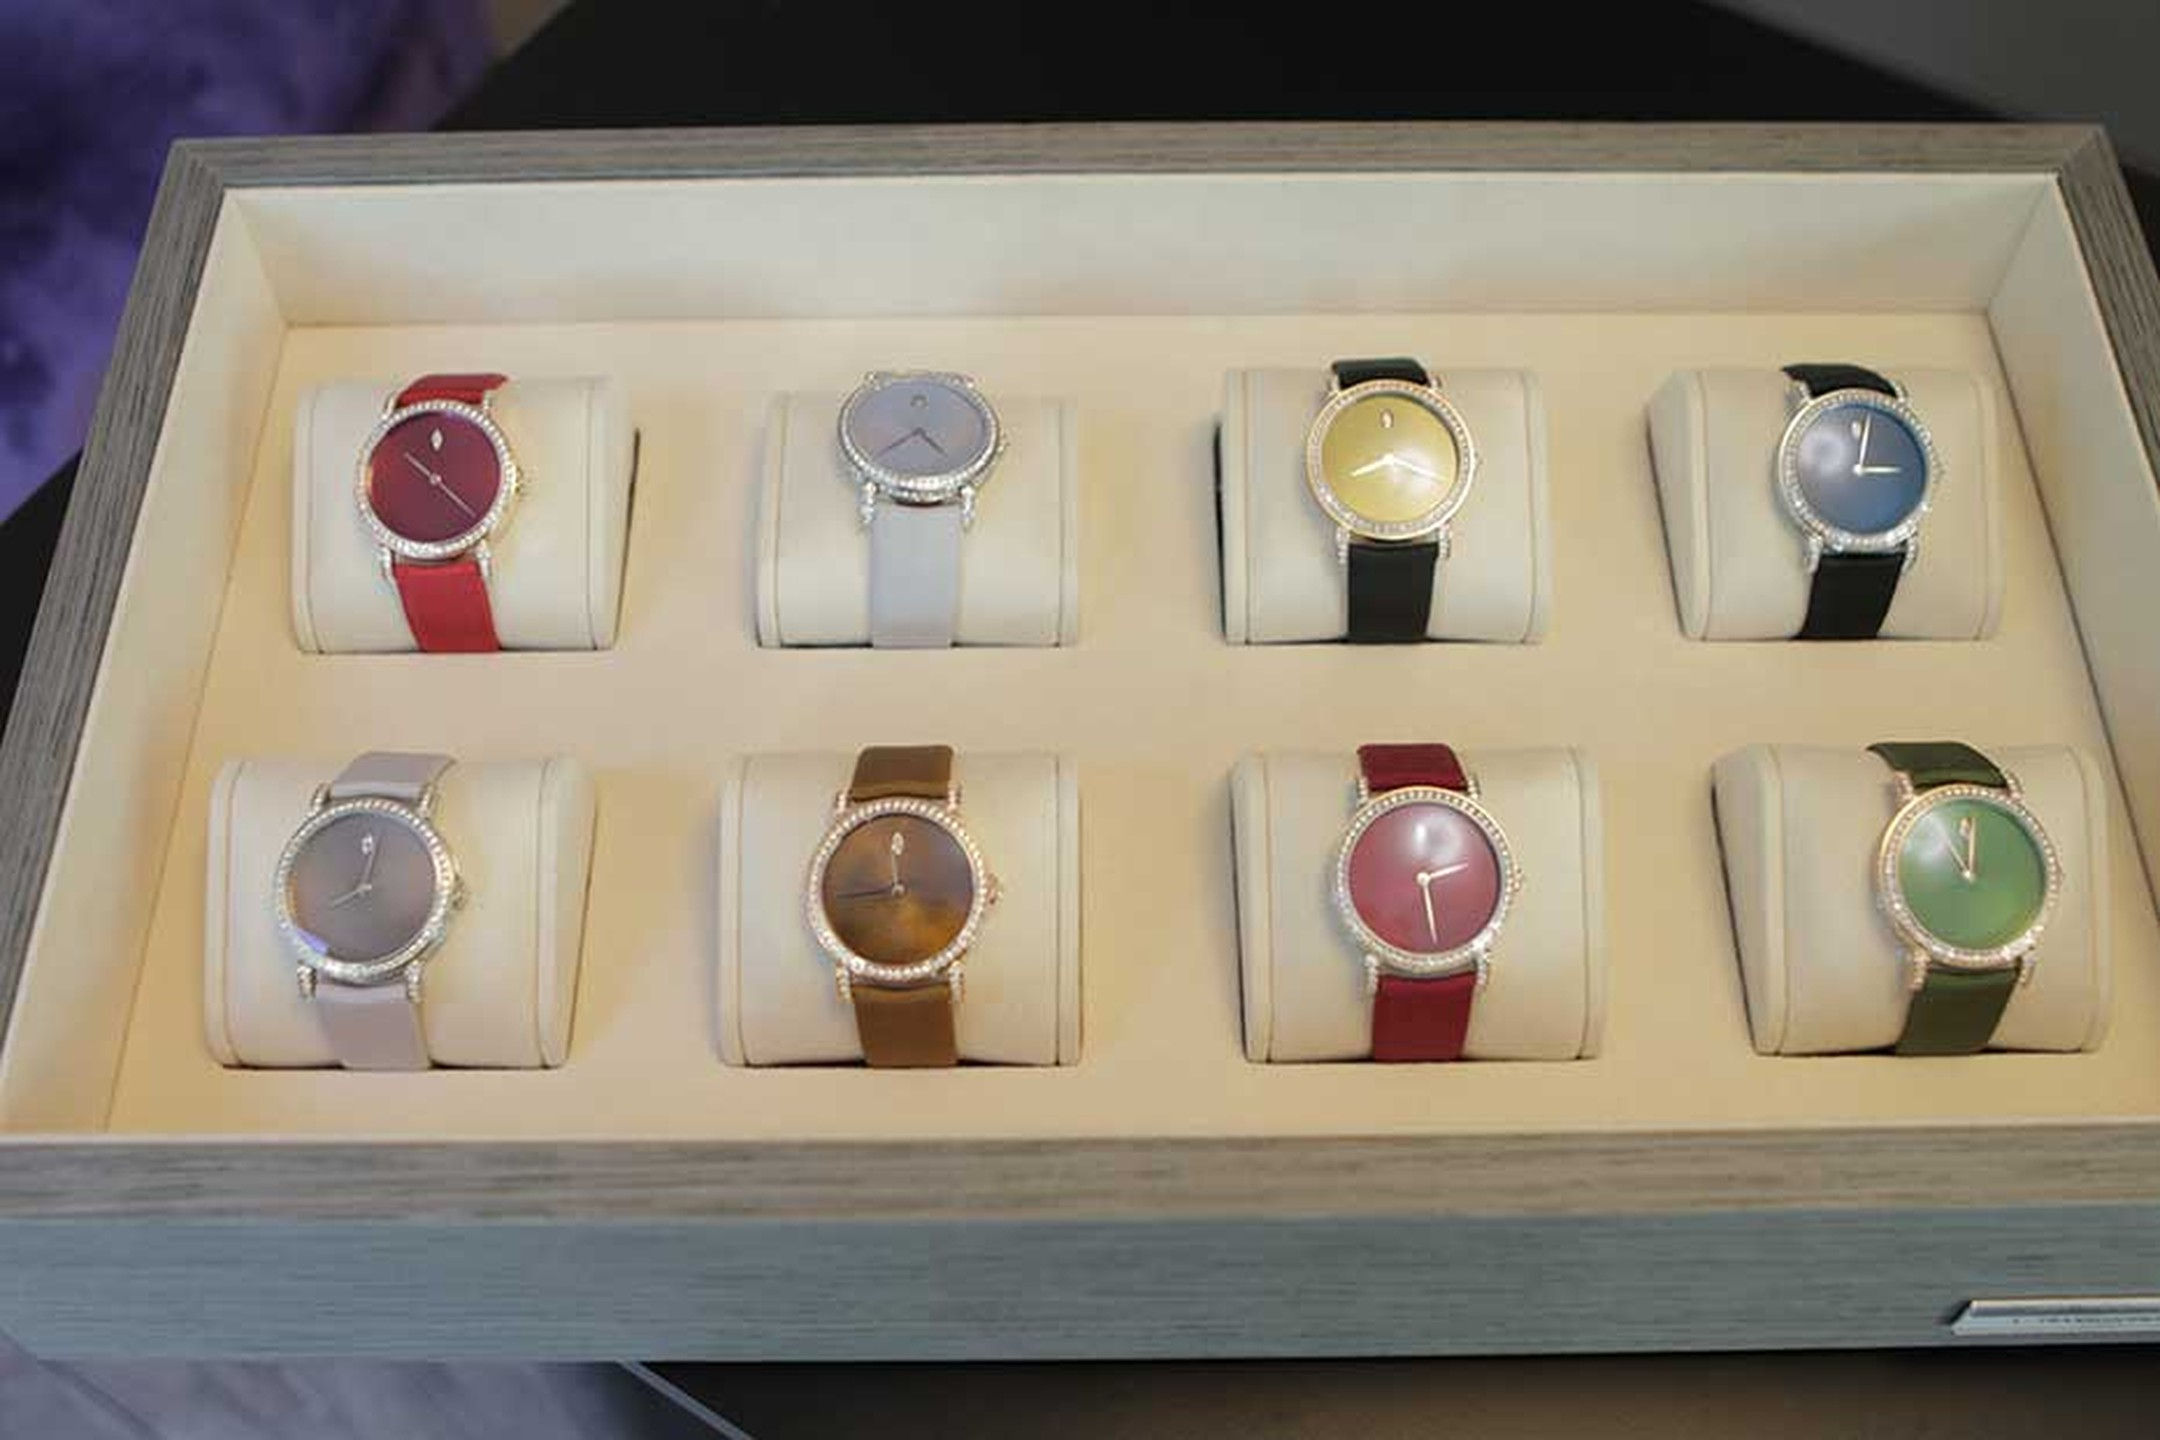 DeLaneau's newest colour offerings for their Rondo Translucent watch range.